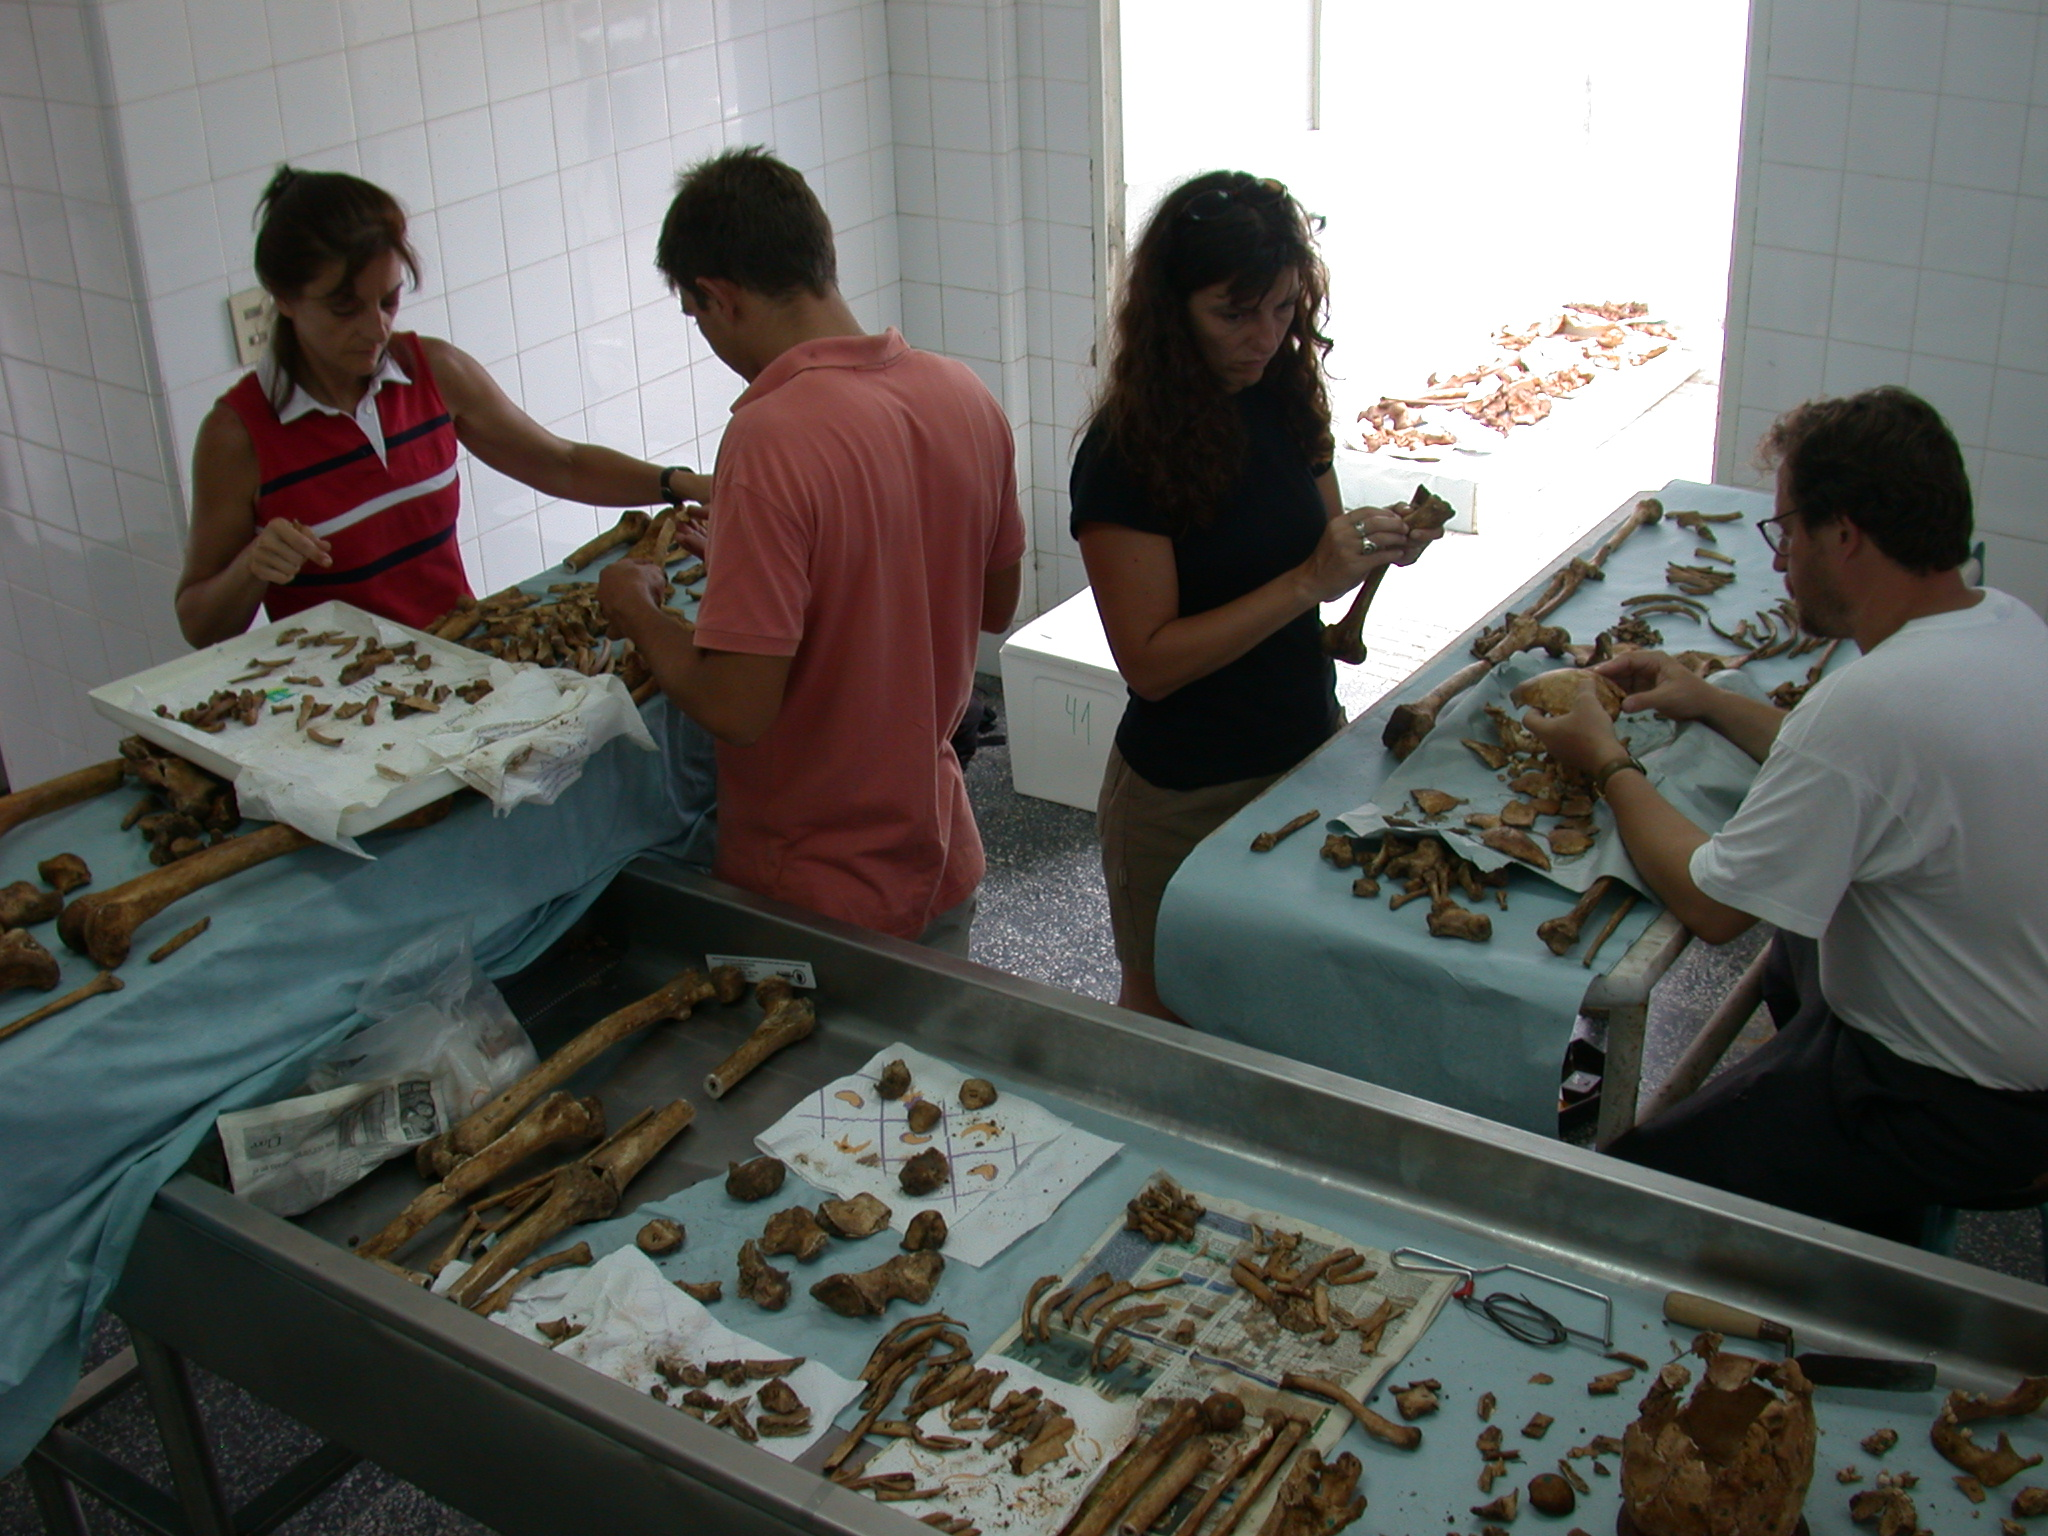 Inside the laboratory of the Argentine Forensic Anthropology Team